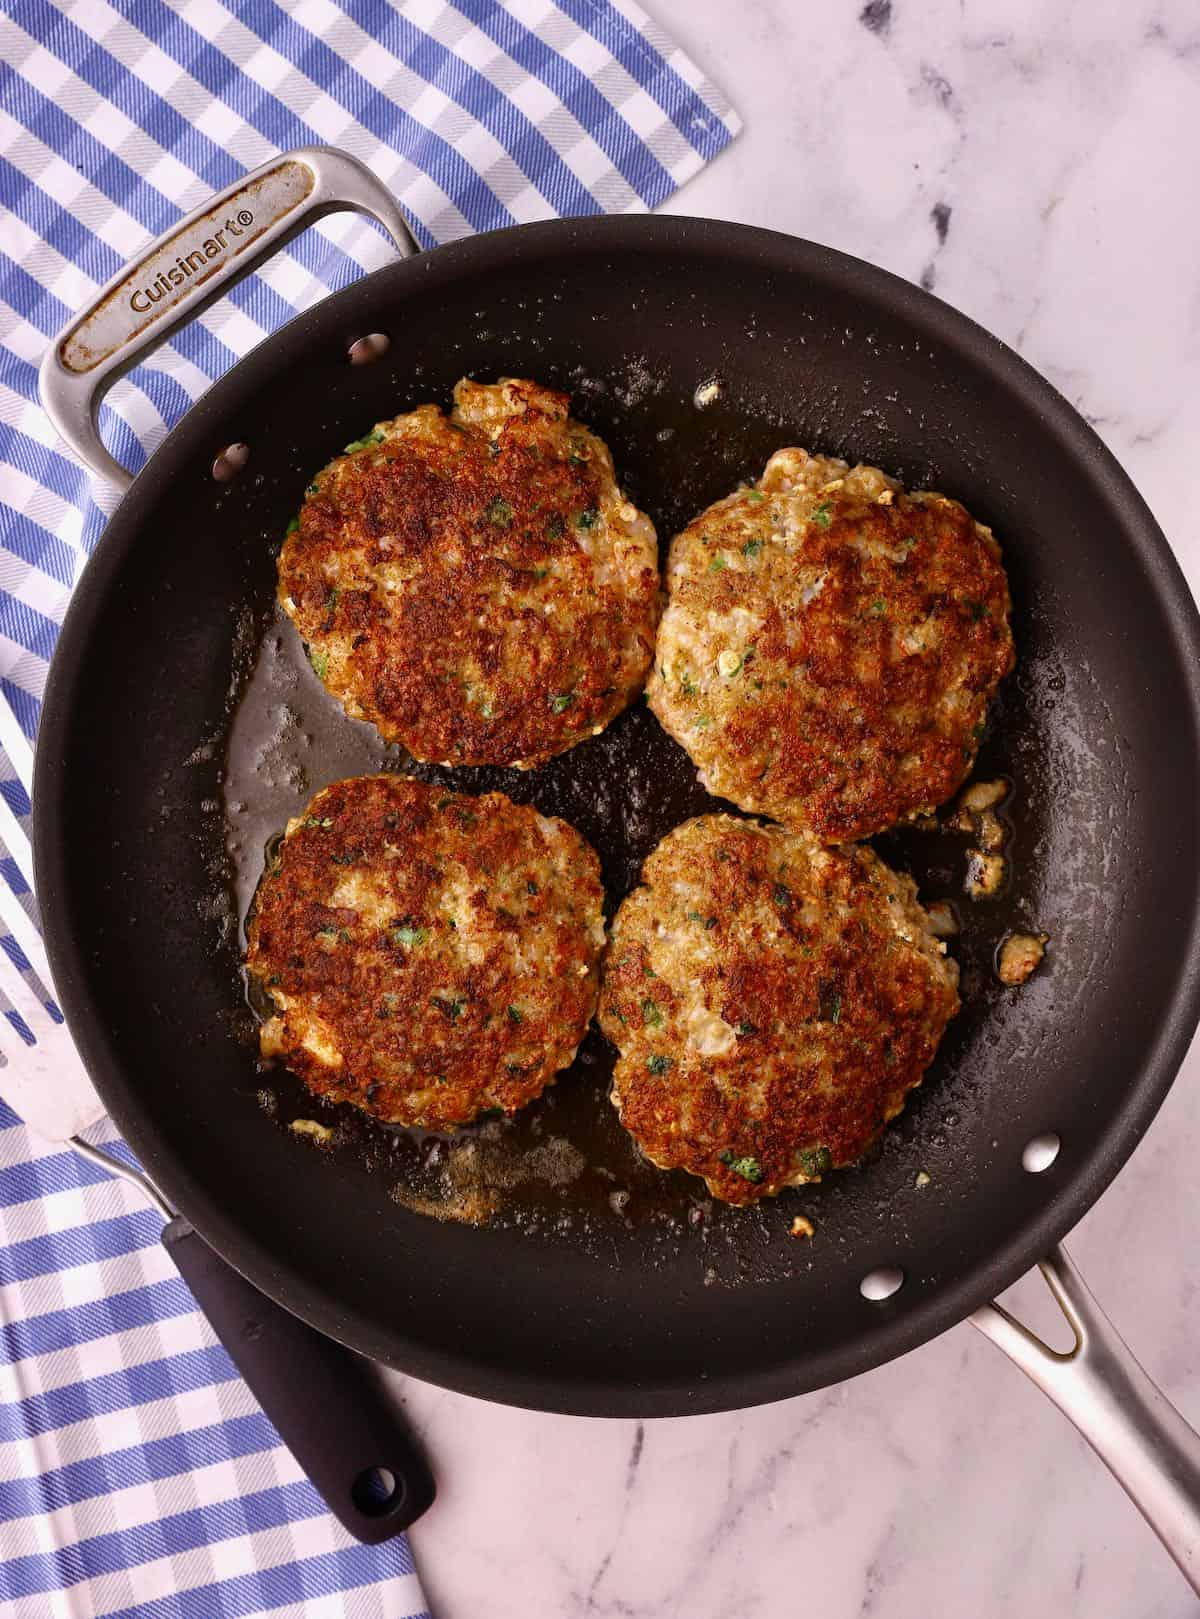 Four shrimp burgers cooking in a skillet.